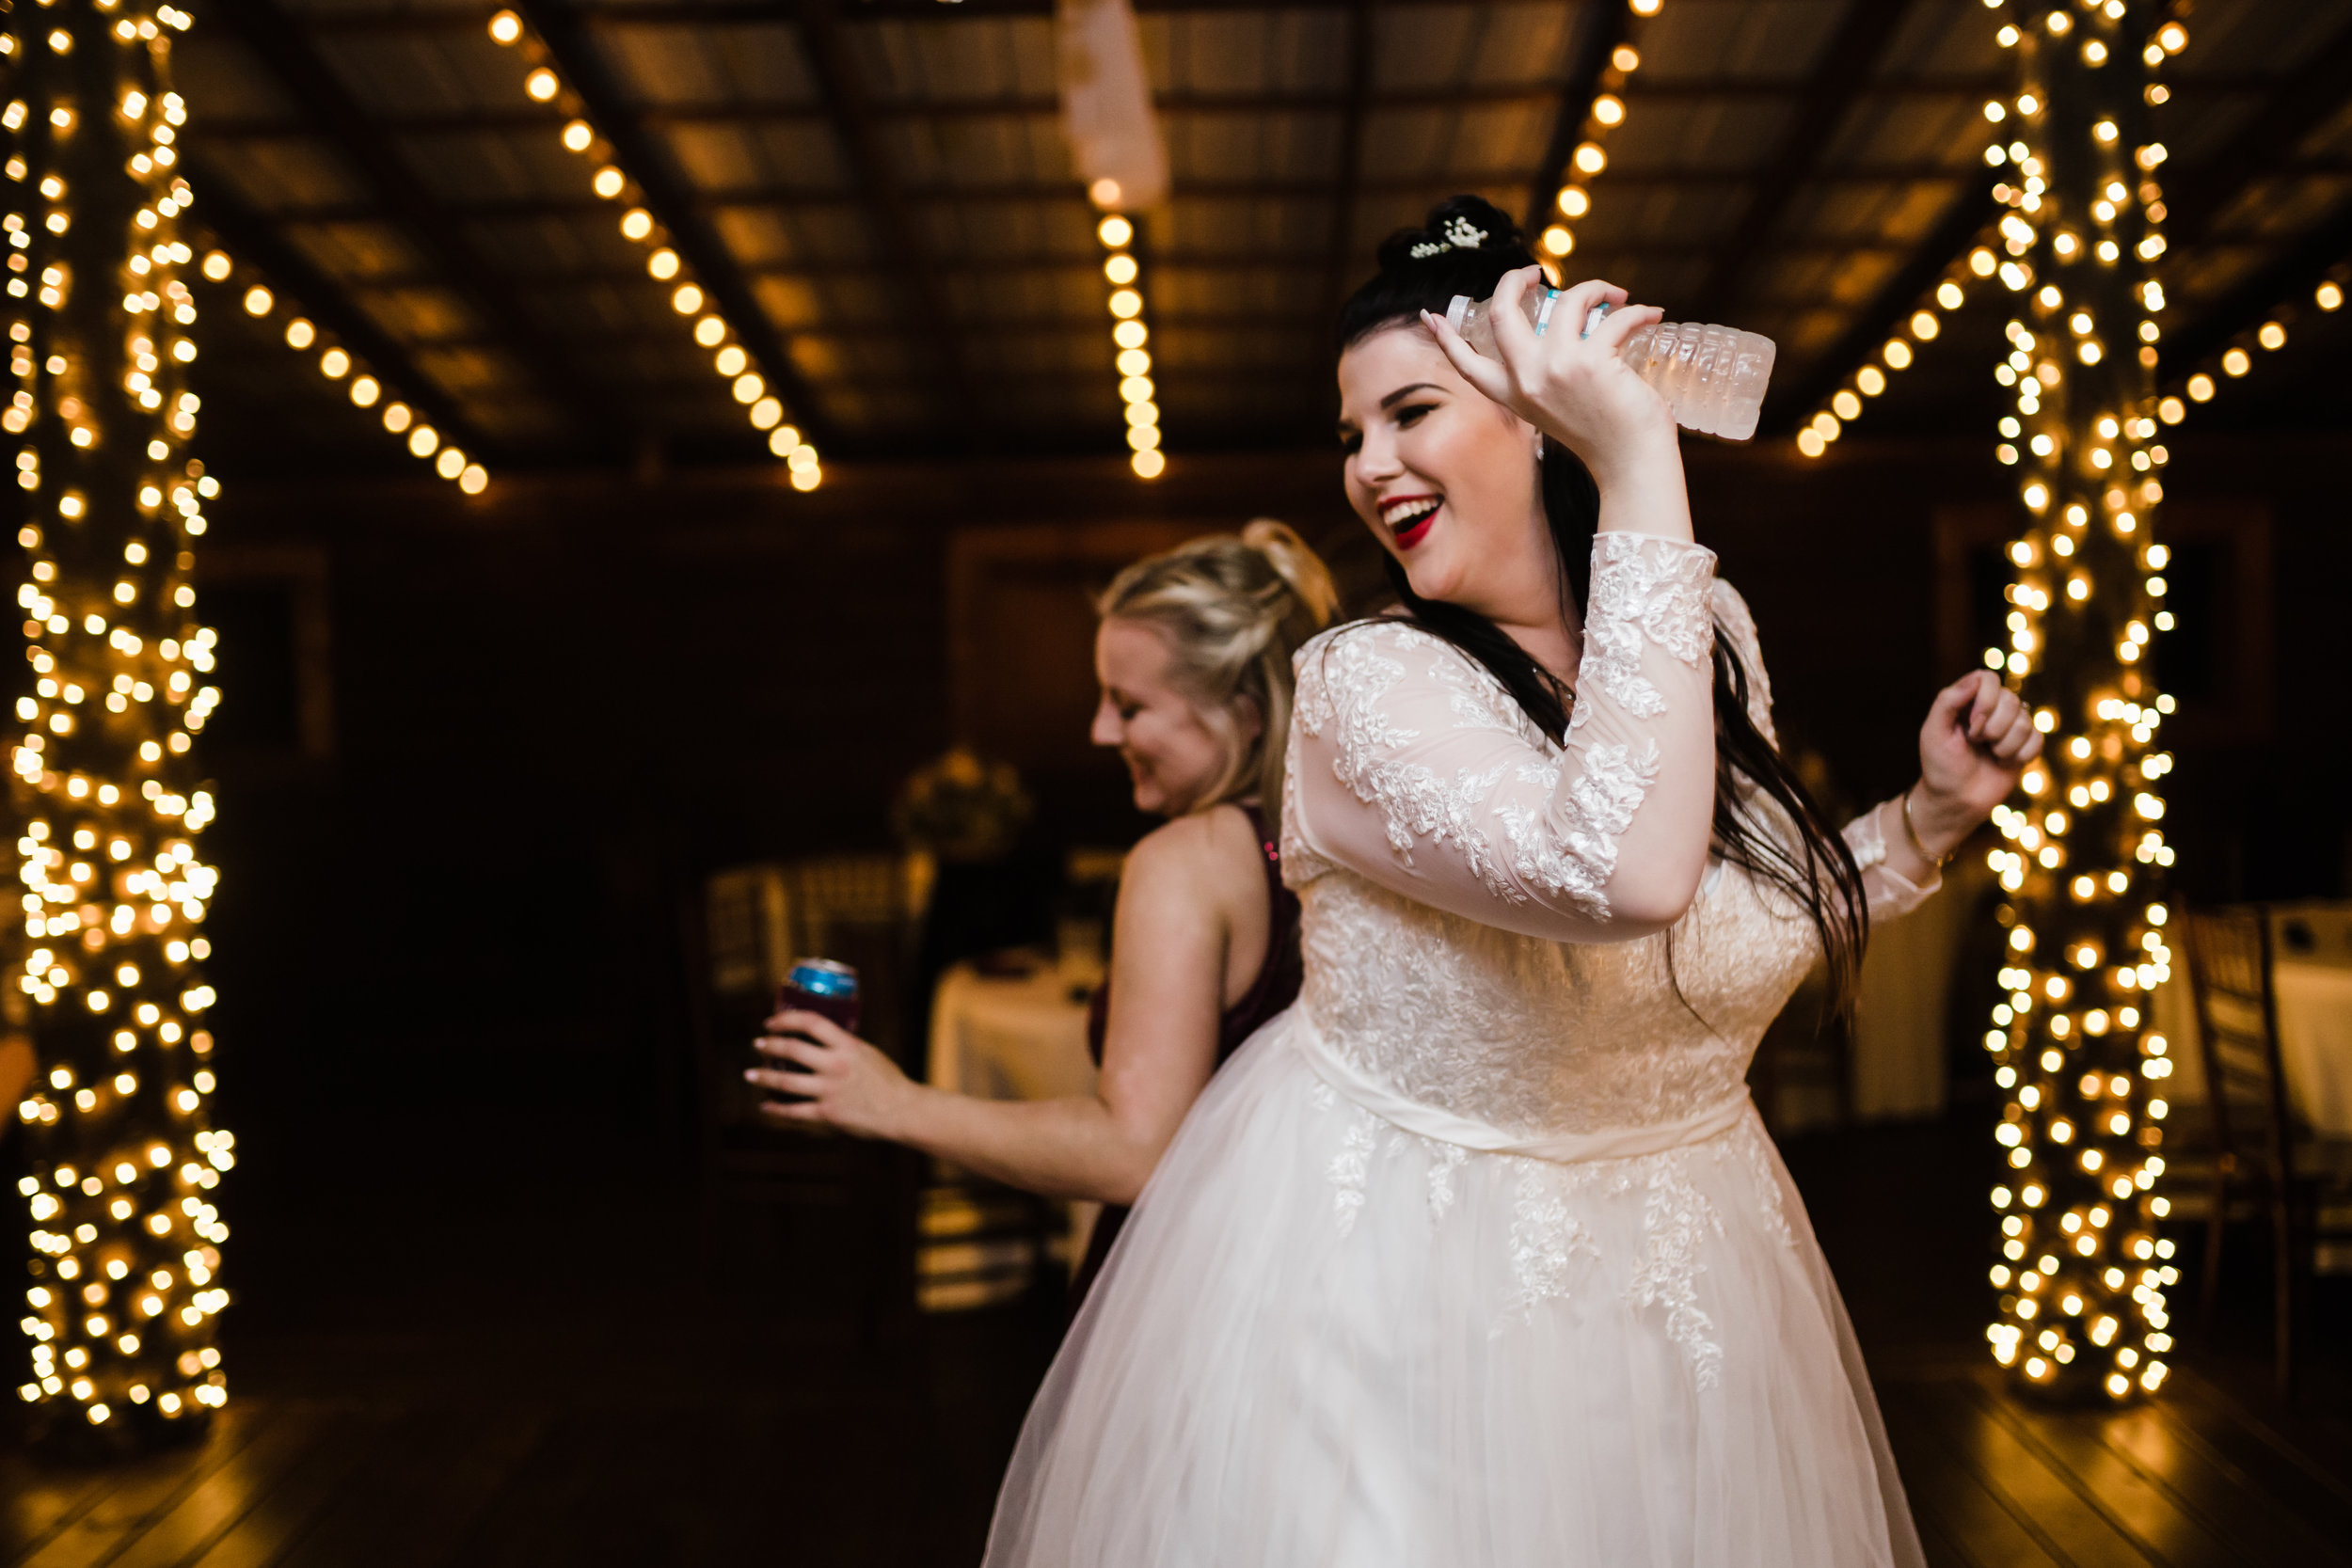 2018.11.11 Paige and TJ Enchanting Barn Wedding (753 of 841).jpg